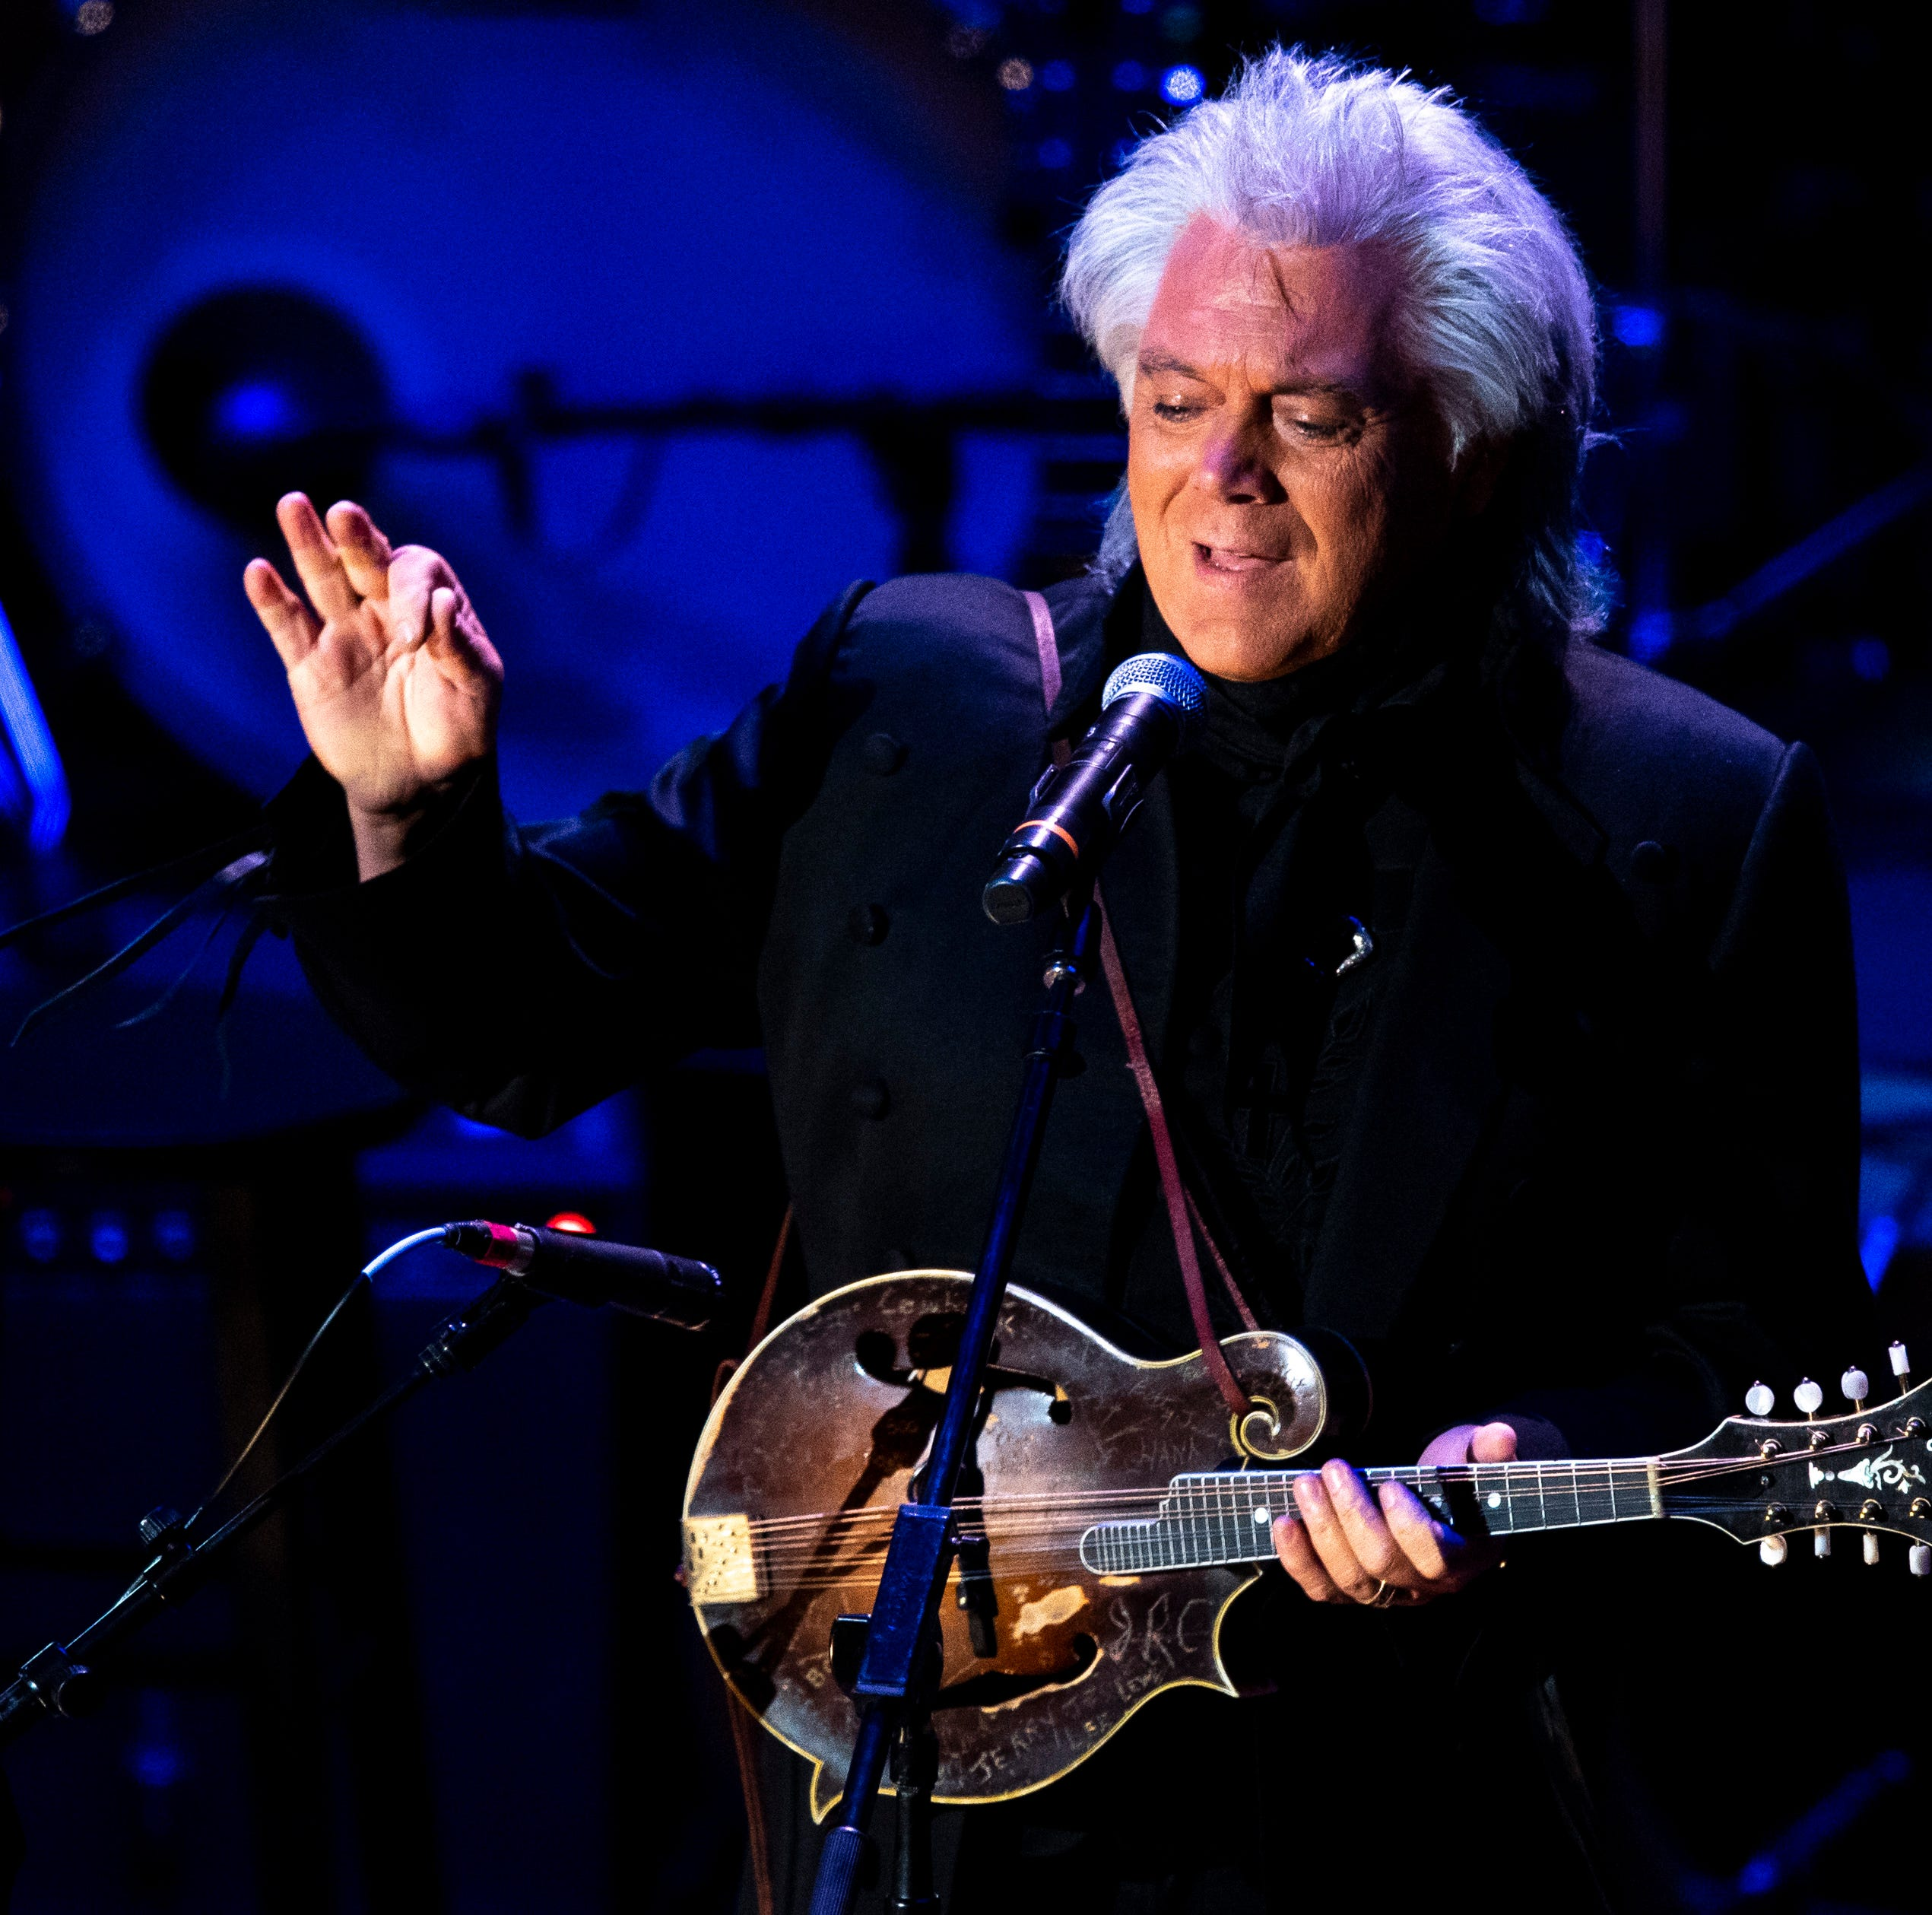 Marty Stuart named 2019 artist-in-residence at Country Music Hall of Fame